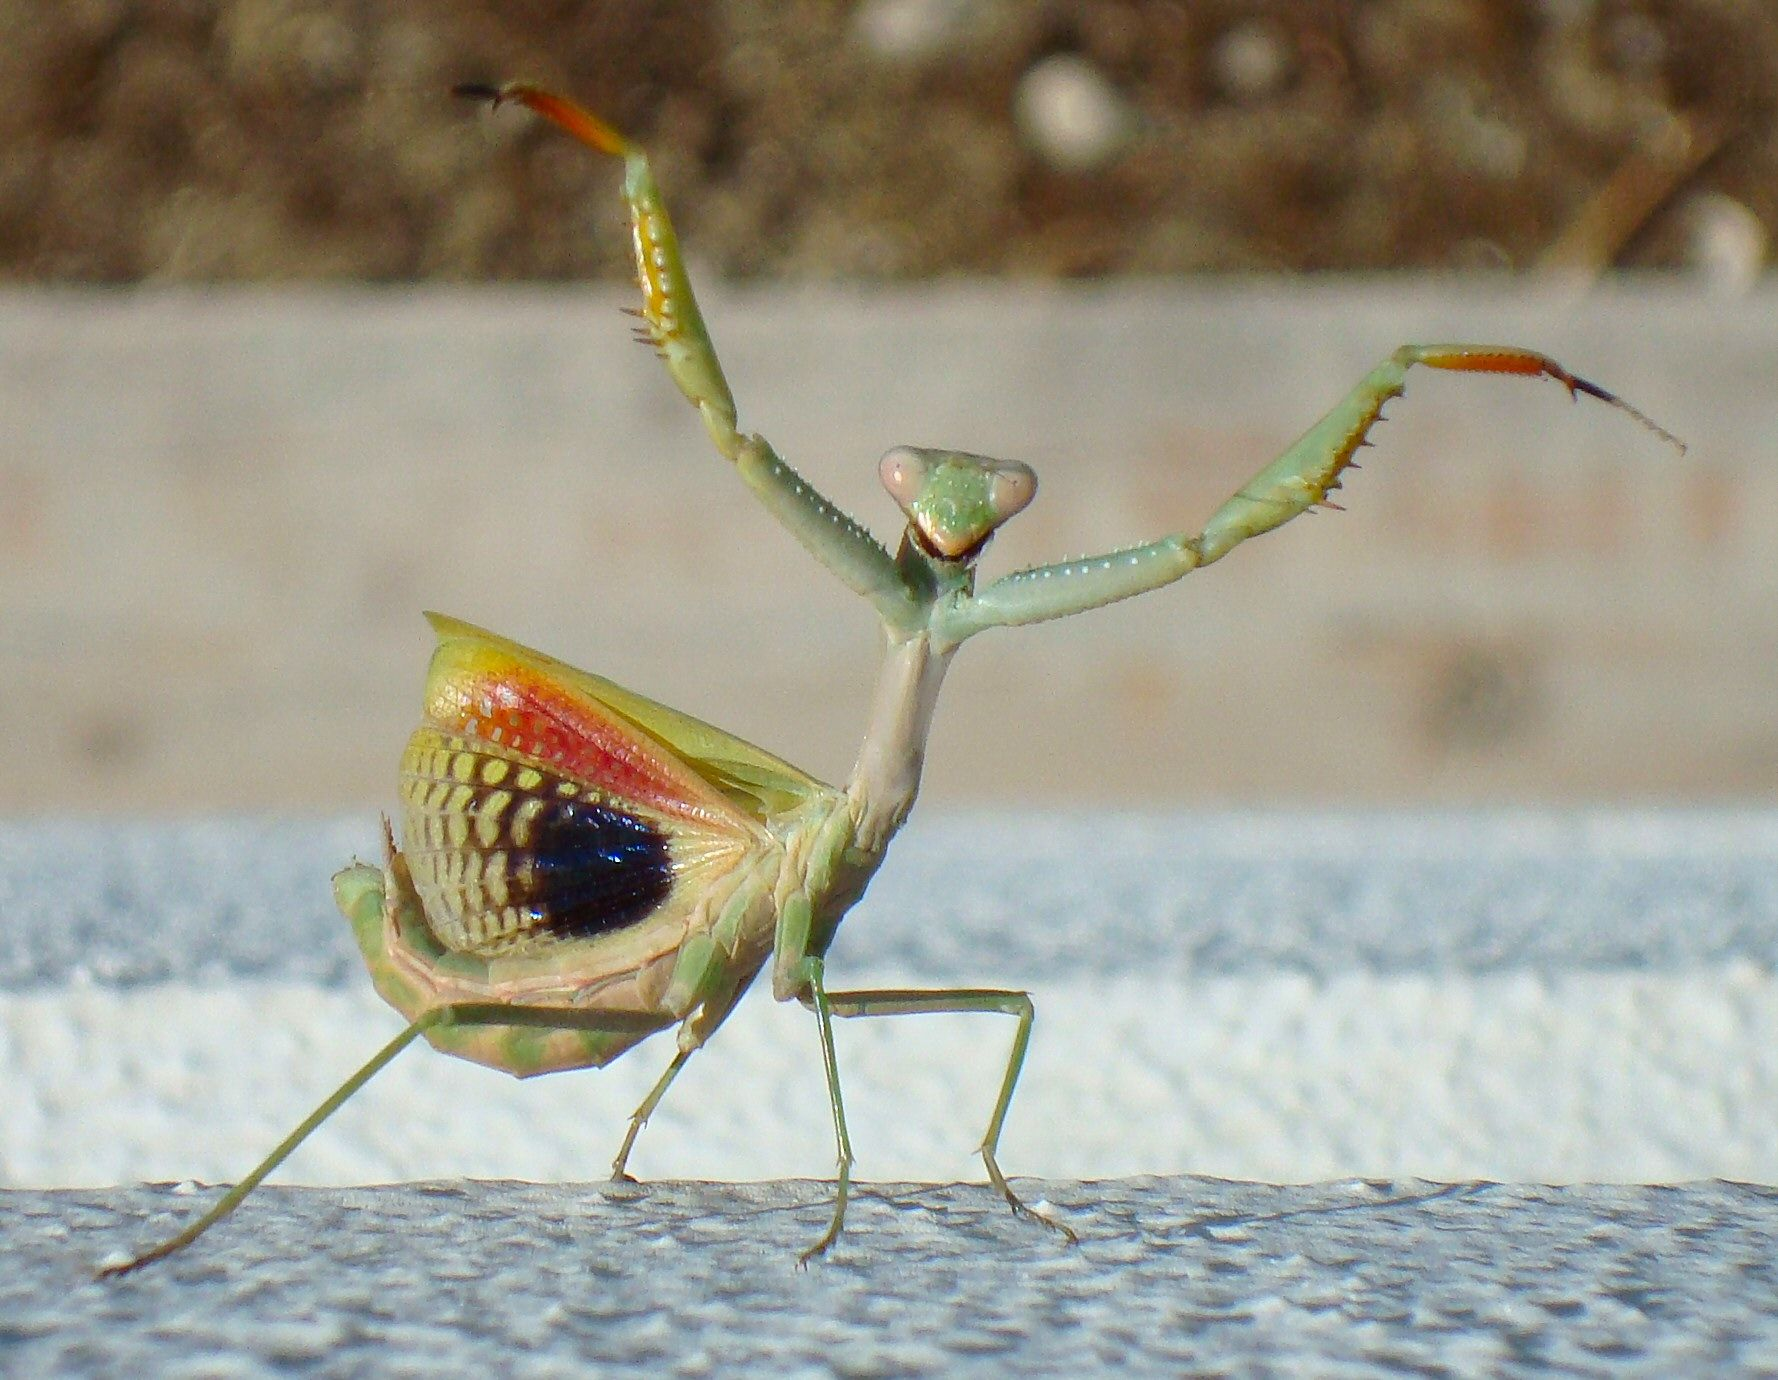 praying mantis - Google Search | Mantises | Pinterest | Seasons ...